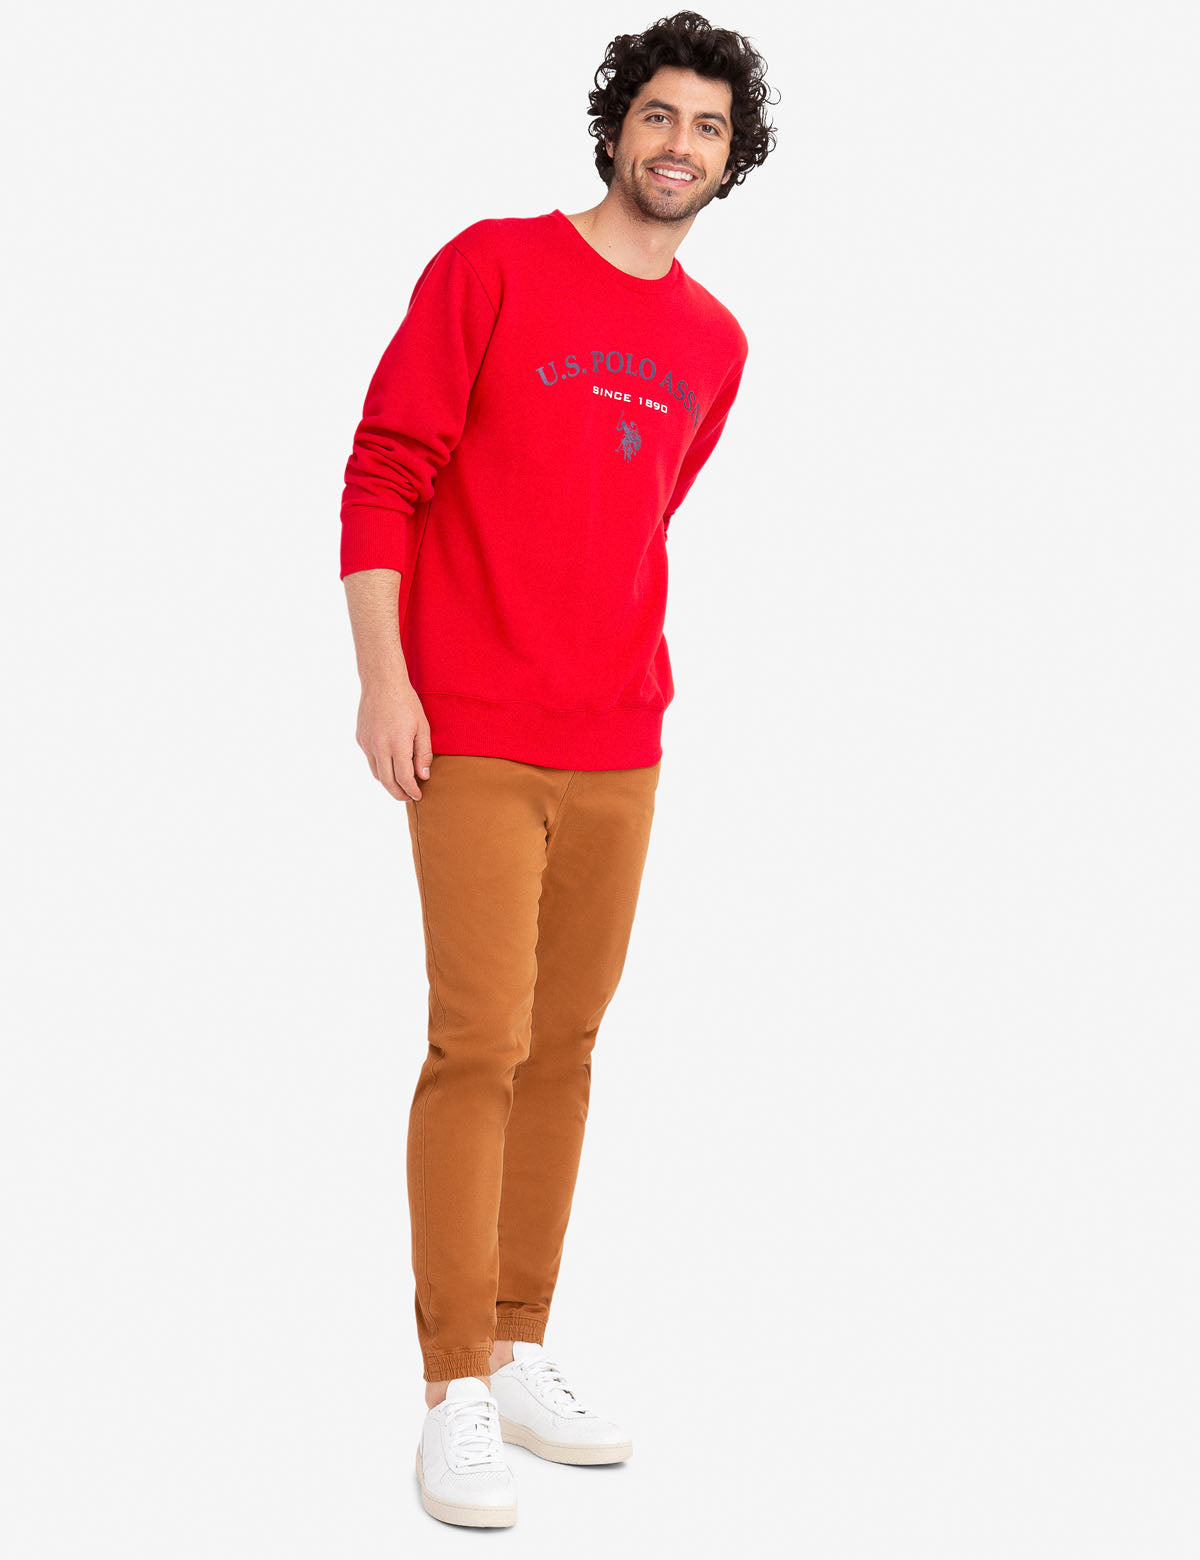 GRAPHIC CREW NECK SWEATSHIRT - U.S. Polo Assn.